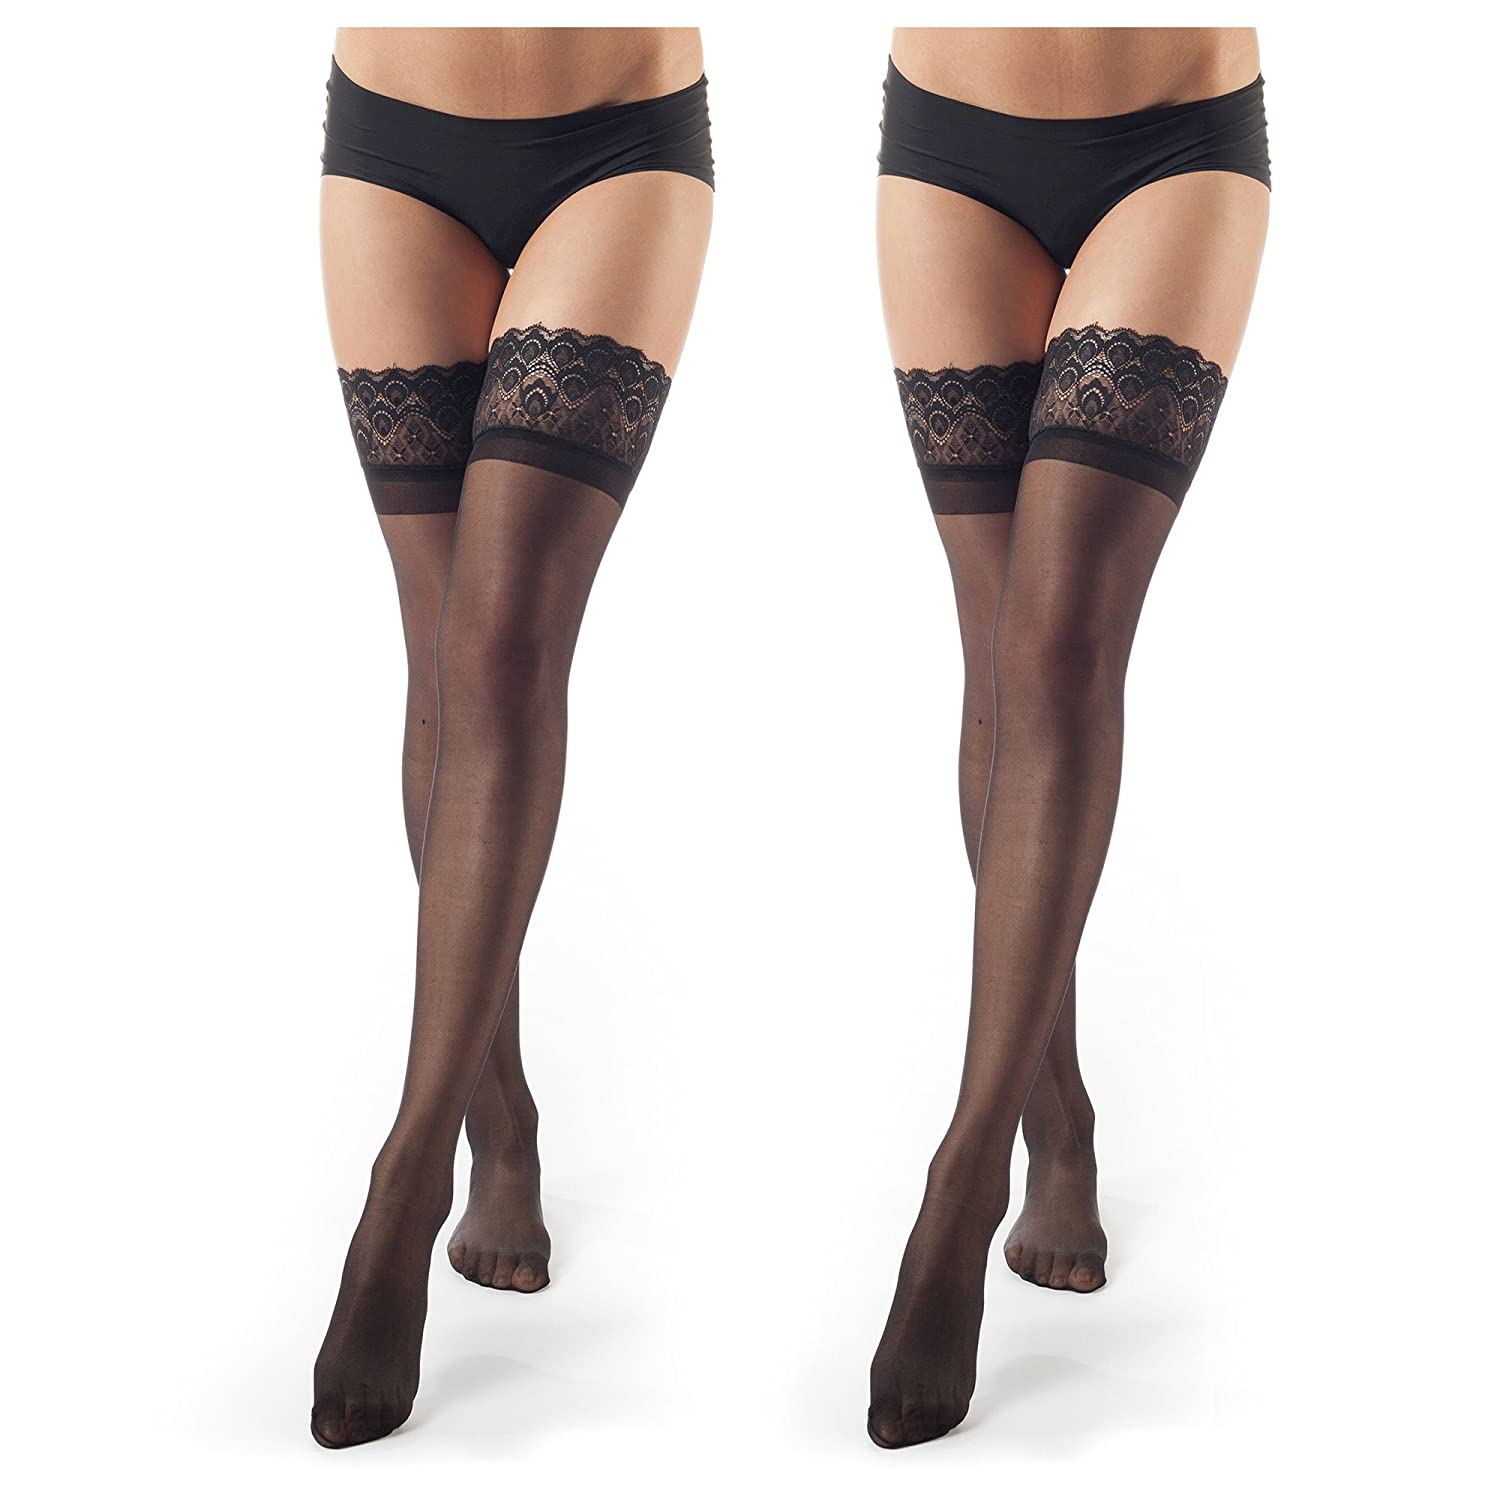 2 Pairs  Black ElsaYX Women's Lace Top ThighHigh Stockings